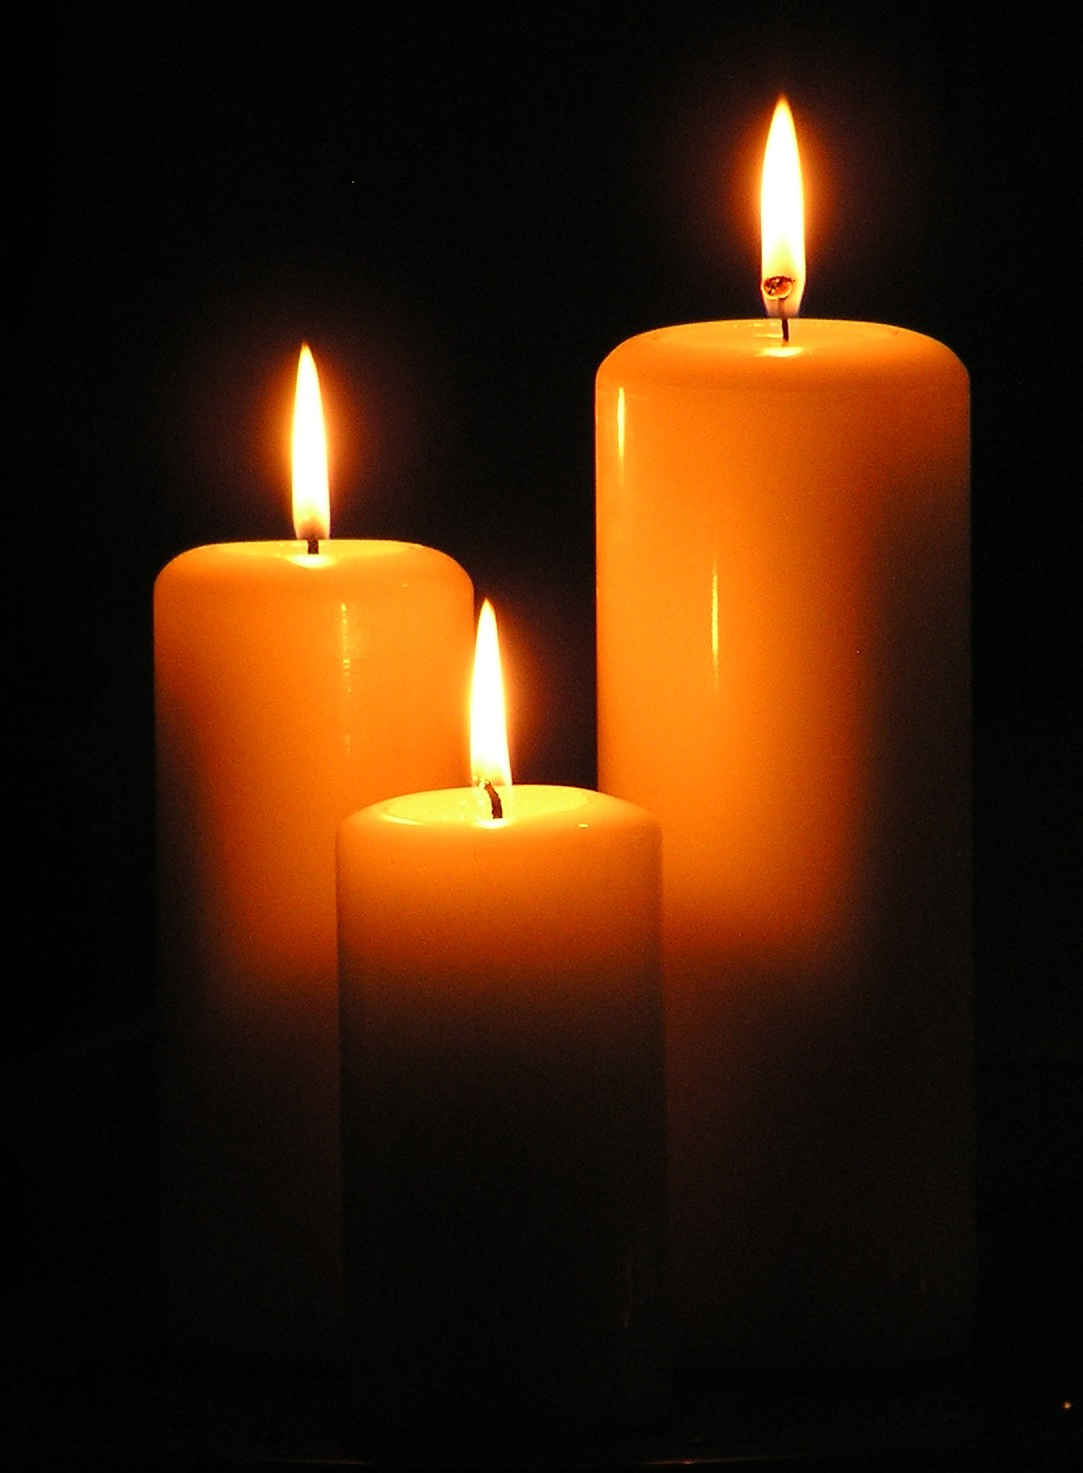 Church Candles Carols By Candlelight Nukelearfishing